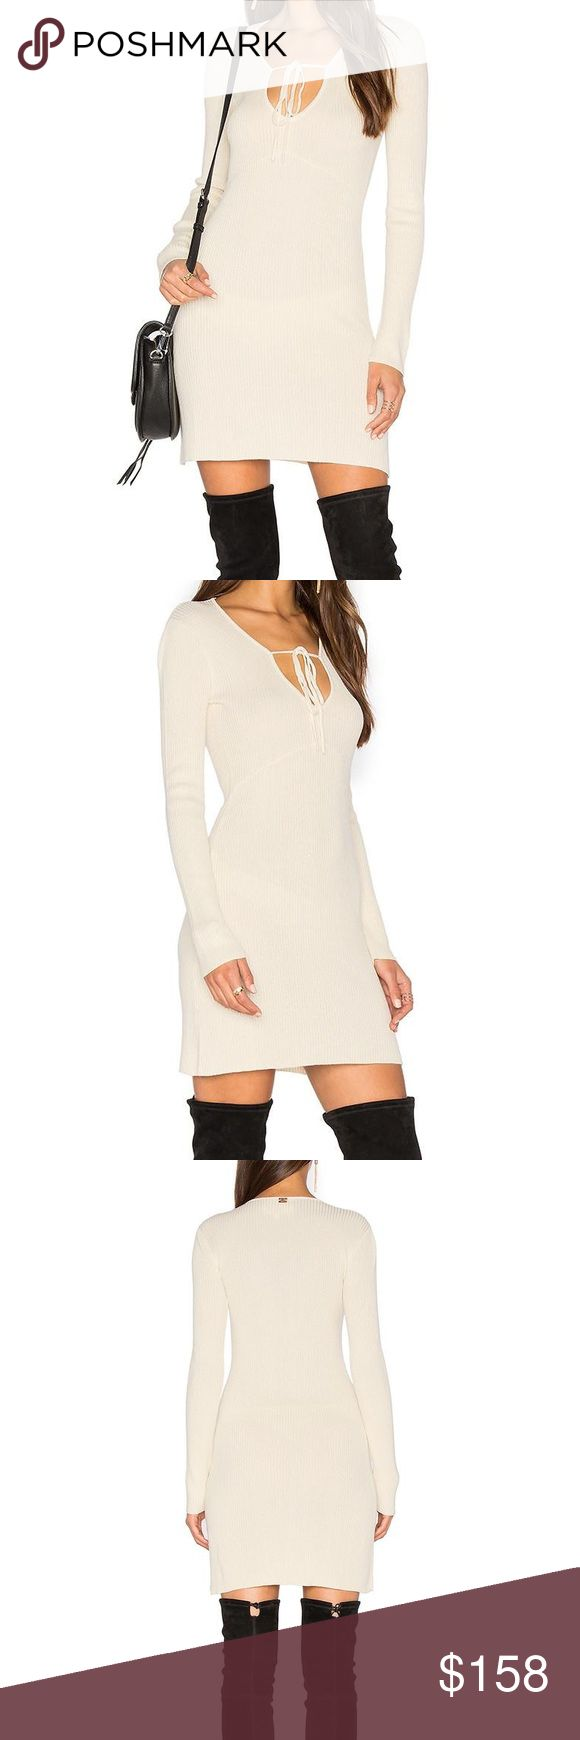 NWT For Love & Lemons KNITZ Delancey Mini Dress The Delancey Mini Dress from For Love & Lemons KNITZ Collection is here to make sure you arrive 5 minutes early. This sweet and soft number features mini rib stitching, an empire waist seam and a plunging neckline to keep your outfit needs cozy all day! So, roll up your sleeves and get the job done in this falls must have knit dress.  Details 10% silk, 20% cotton, 70% lyocell Mini rib stitching Dry clean only Unlined Modeled in a size S…